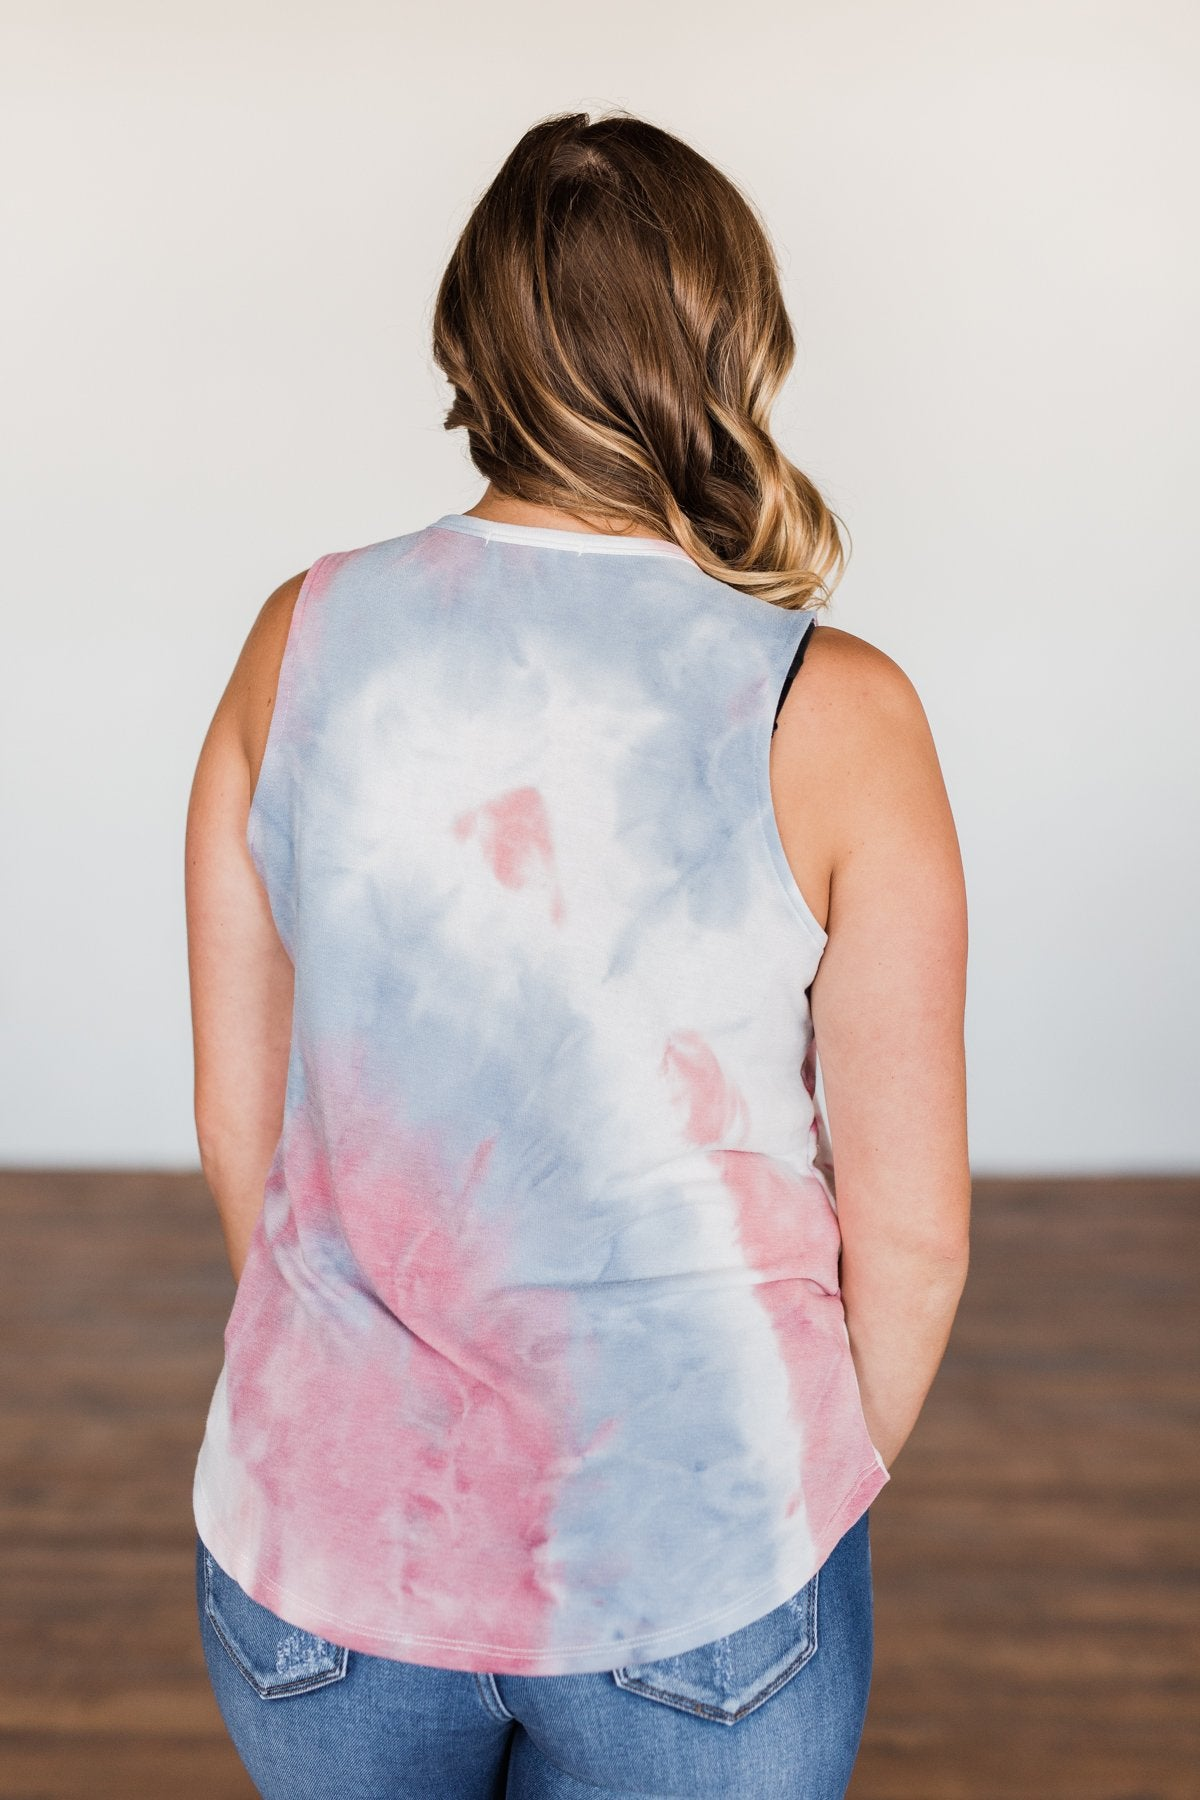 Brighten My Summer Tie Dye Tank Top- Blue, Pink, Ivory